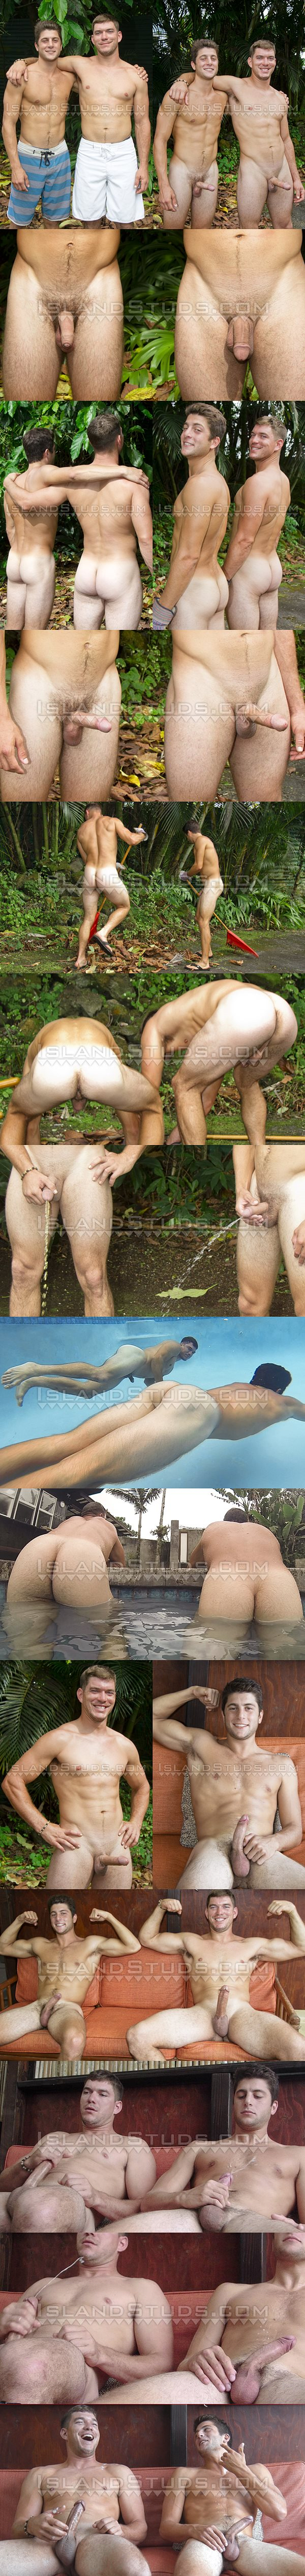 All-American Lumberjack Derek and Italian muscle jock Tony get naked, pose their musular bodies, piss together before they jerk off side by side at Islandstuds